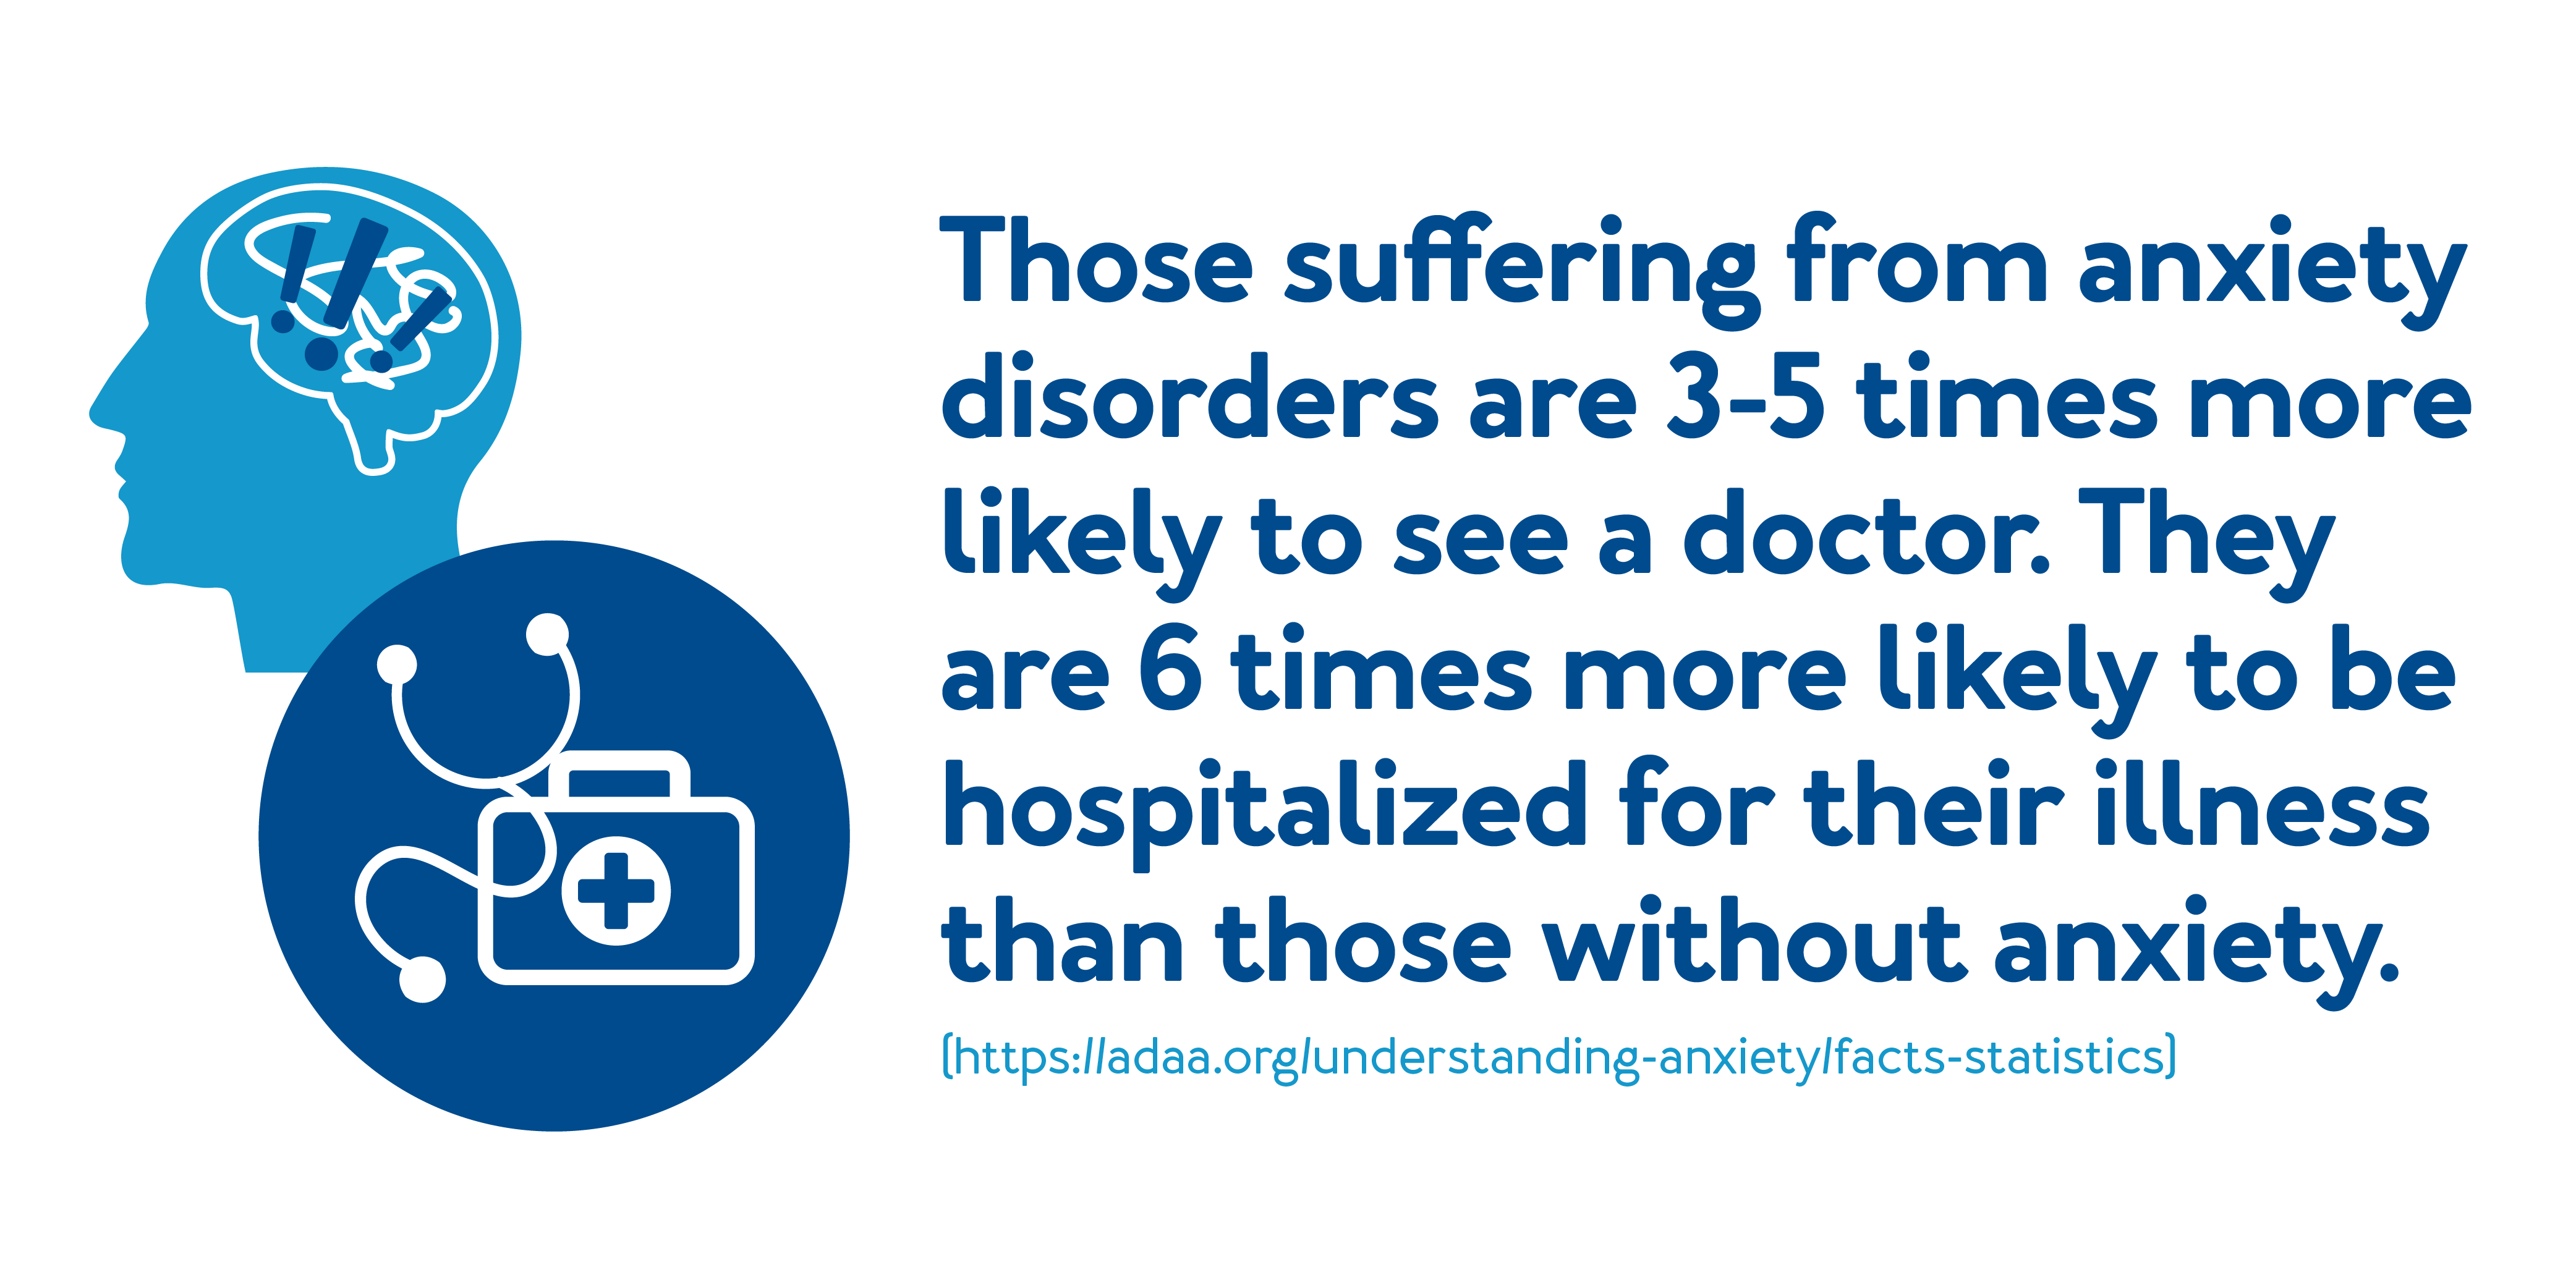 Those suffering from anxiety disorders are 3-5 times more likely to see a doctor. They are six times more likely to be hospitalized for their illness than those without.